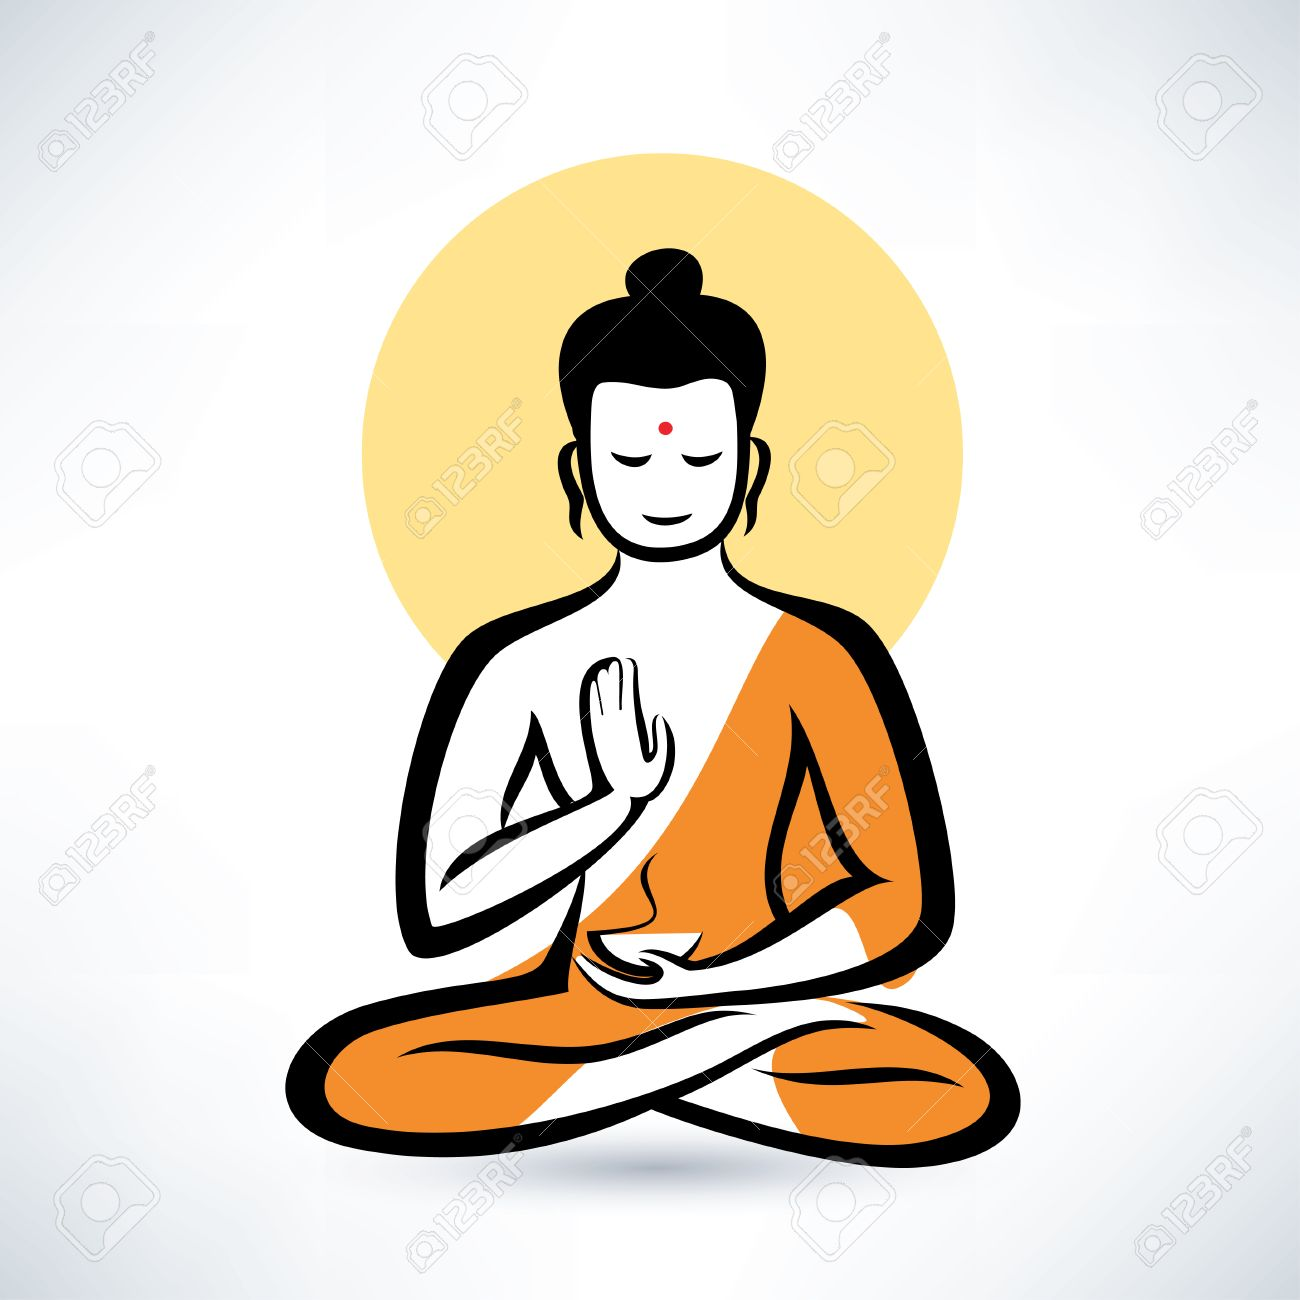 buddha vector symbol royalty free cliparts vectors and stock rh 123rf com buddha vector art buddha vector free download